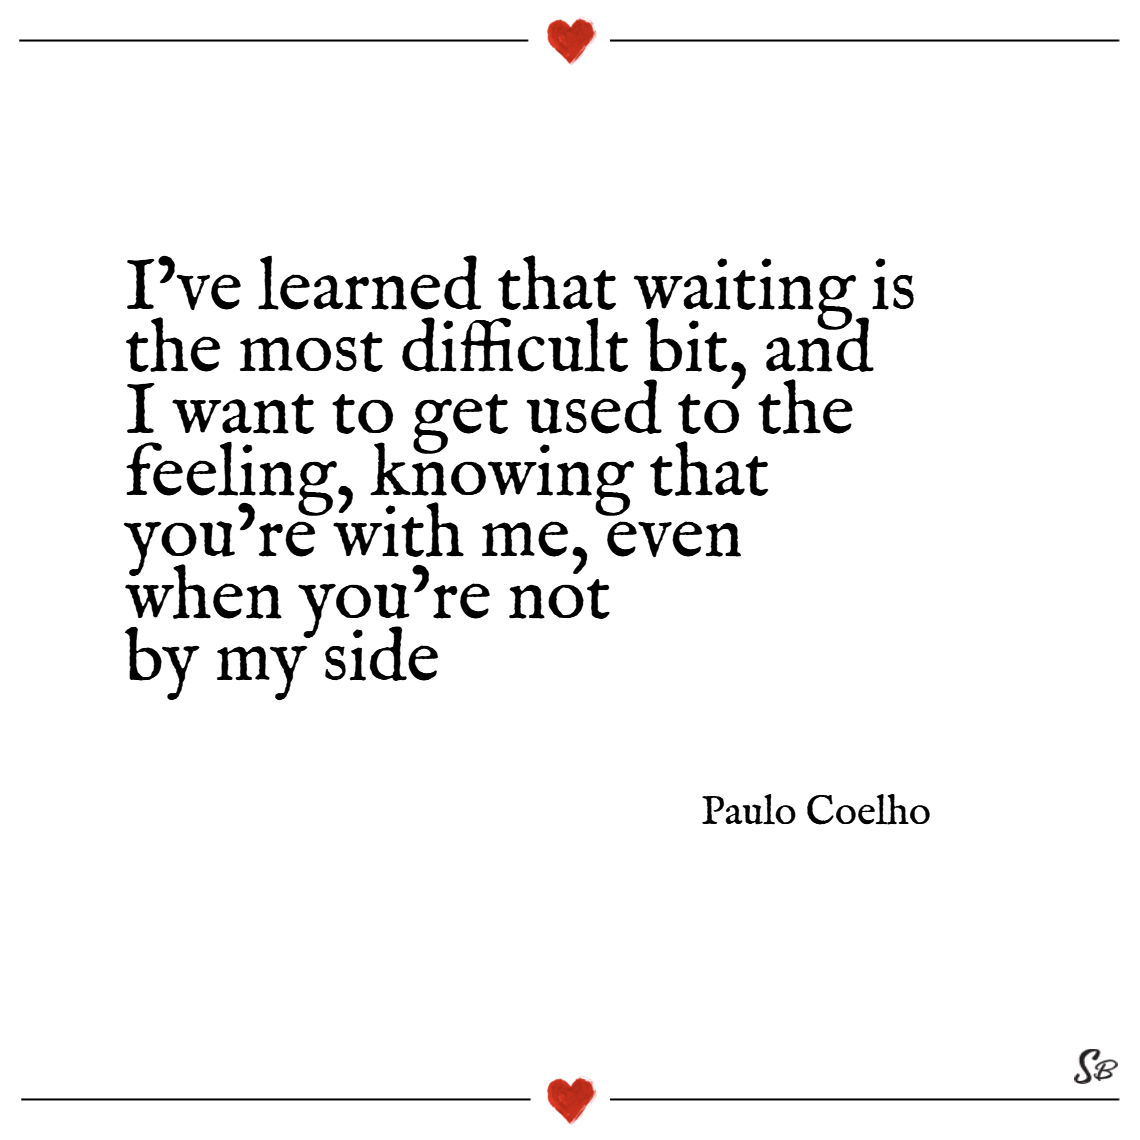 I've learned that waiting is the most difficult bit, and i want to get used to the feeling, knowing that you're with me, even when you're not by my side. – paulo coelho